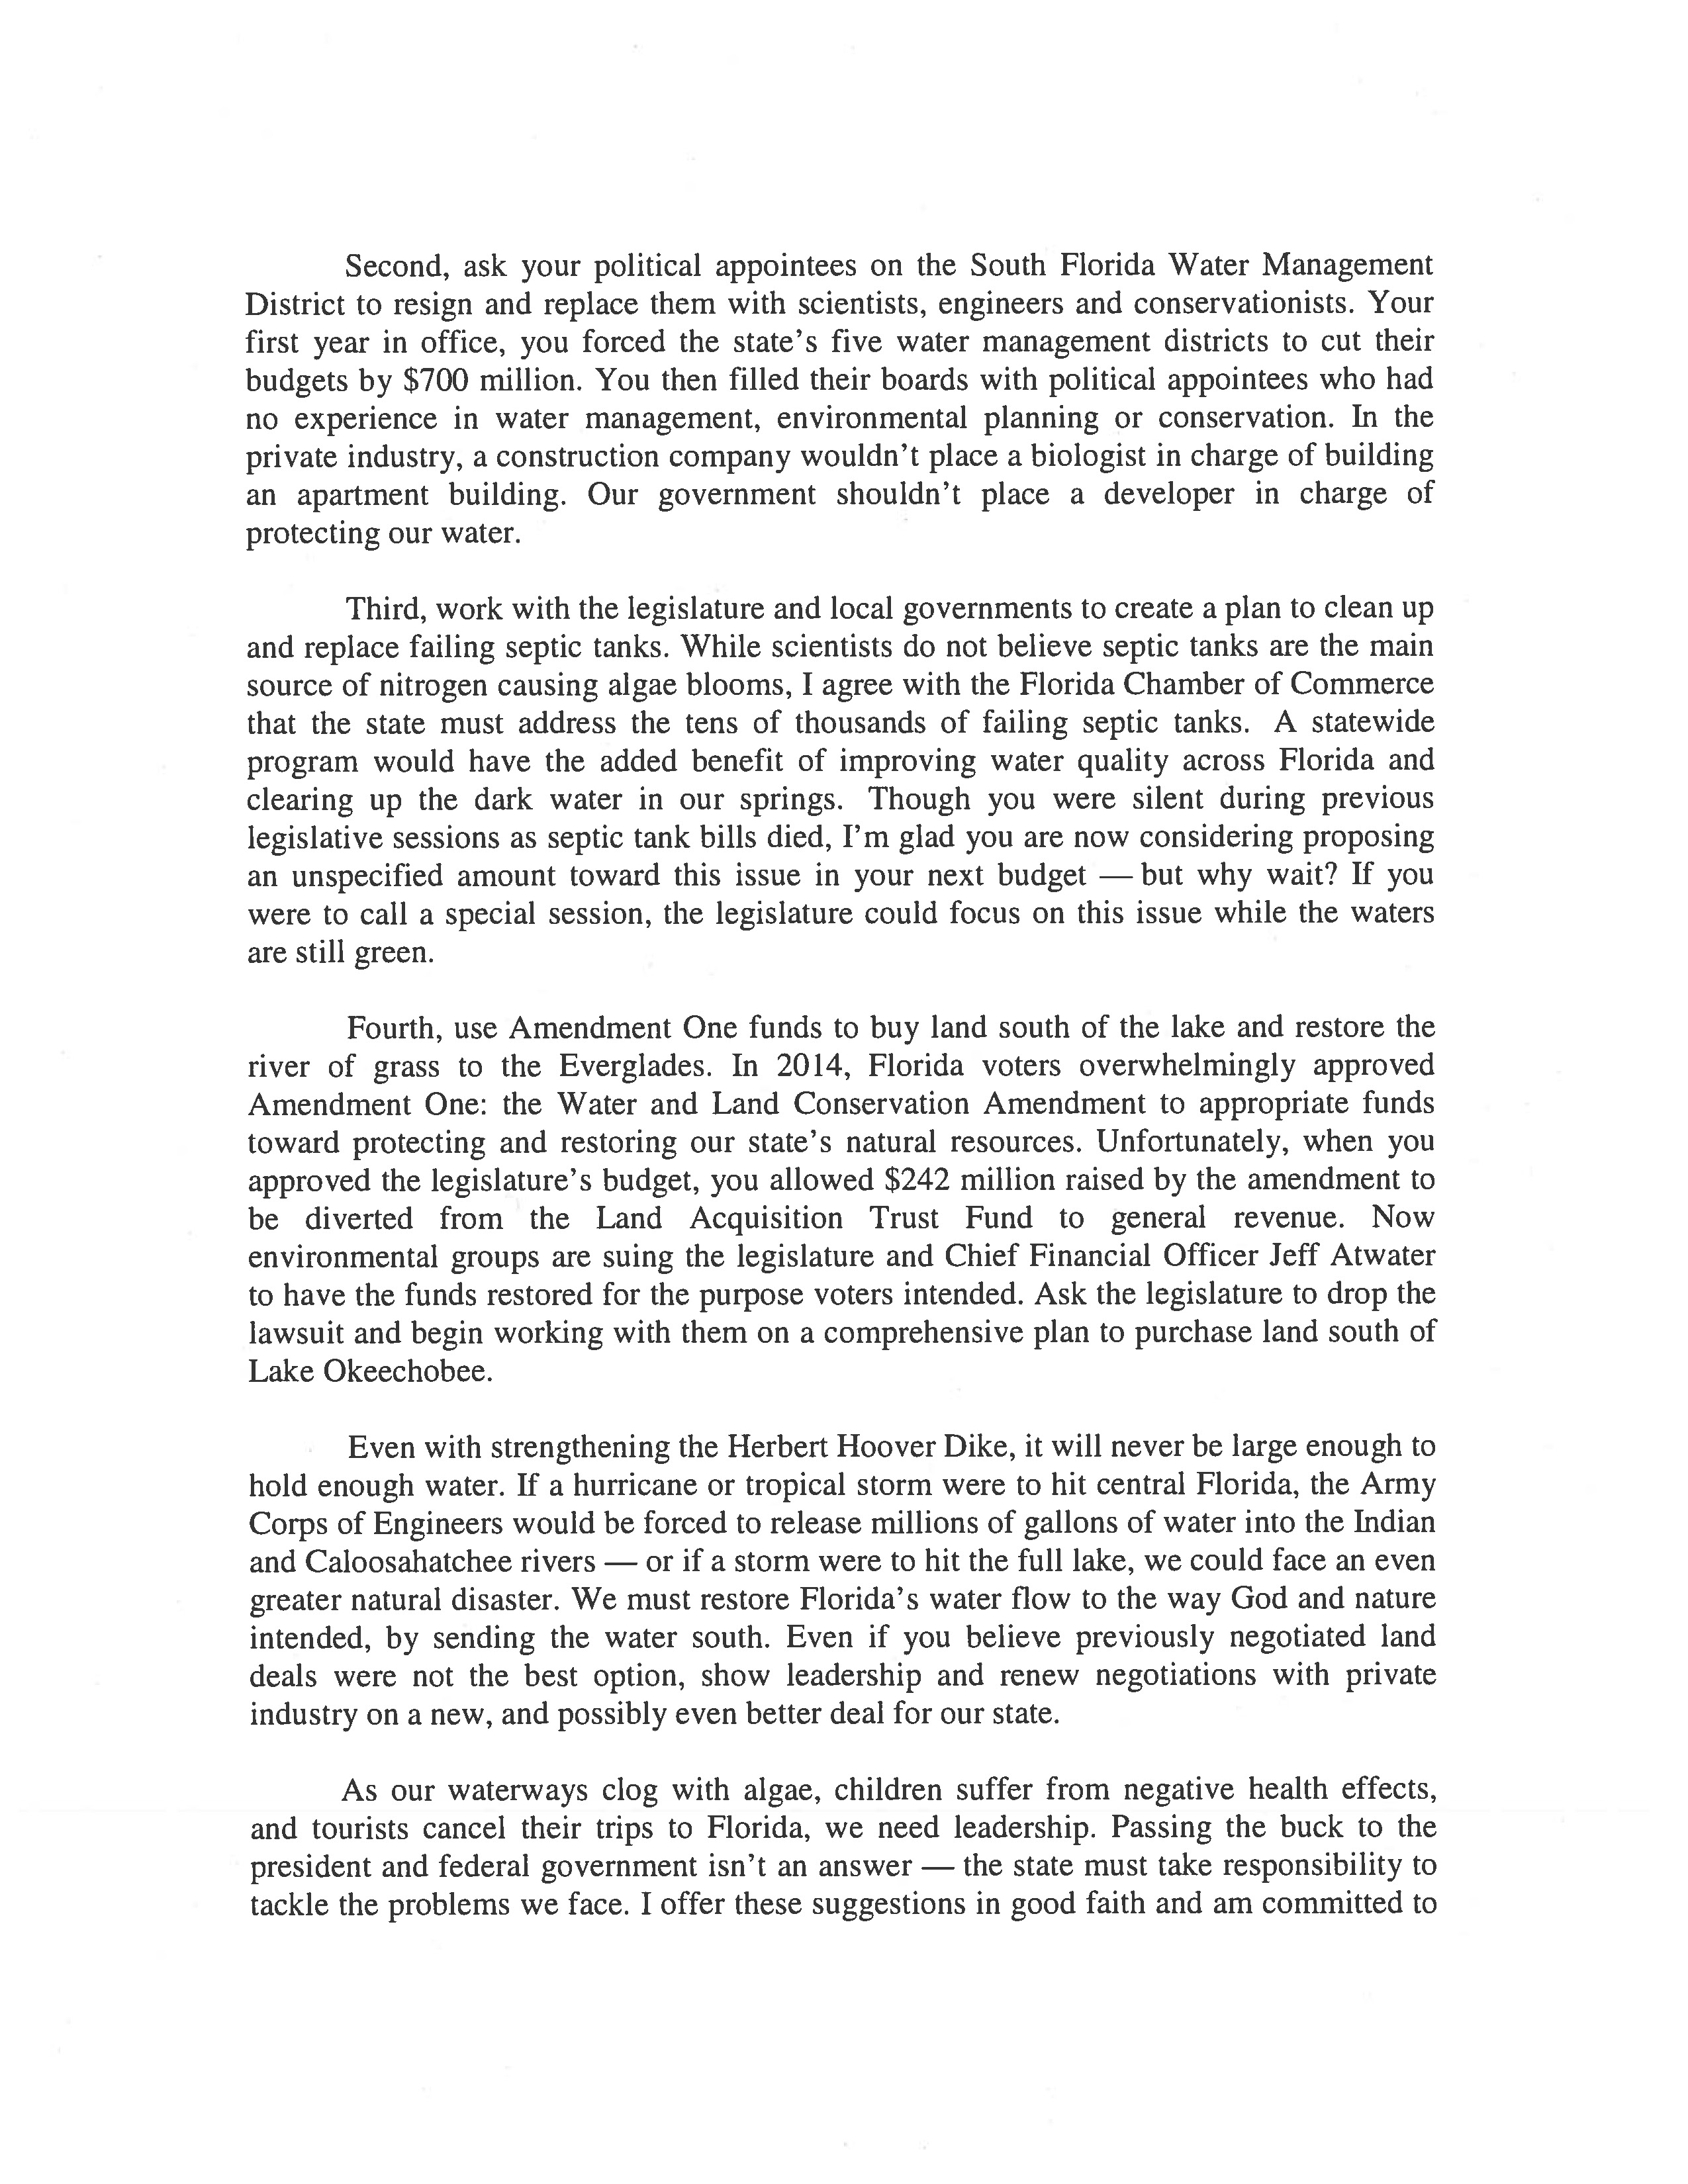 Letter to Governor Scott_Page_2